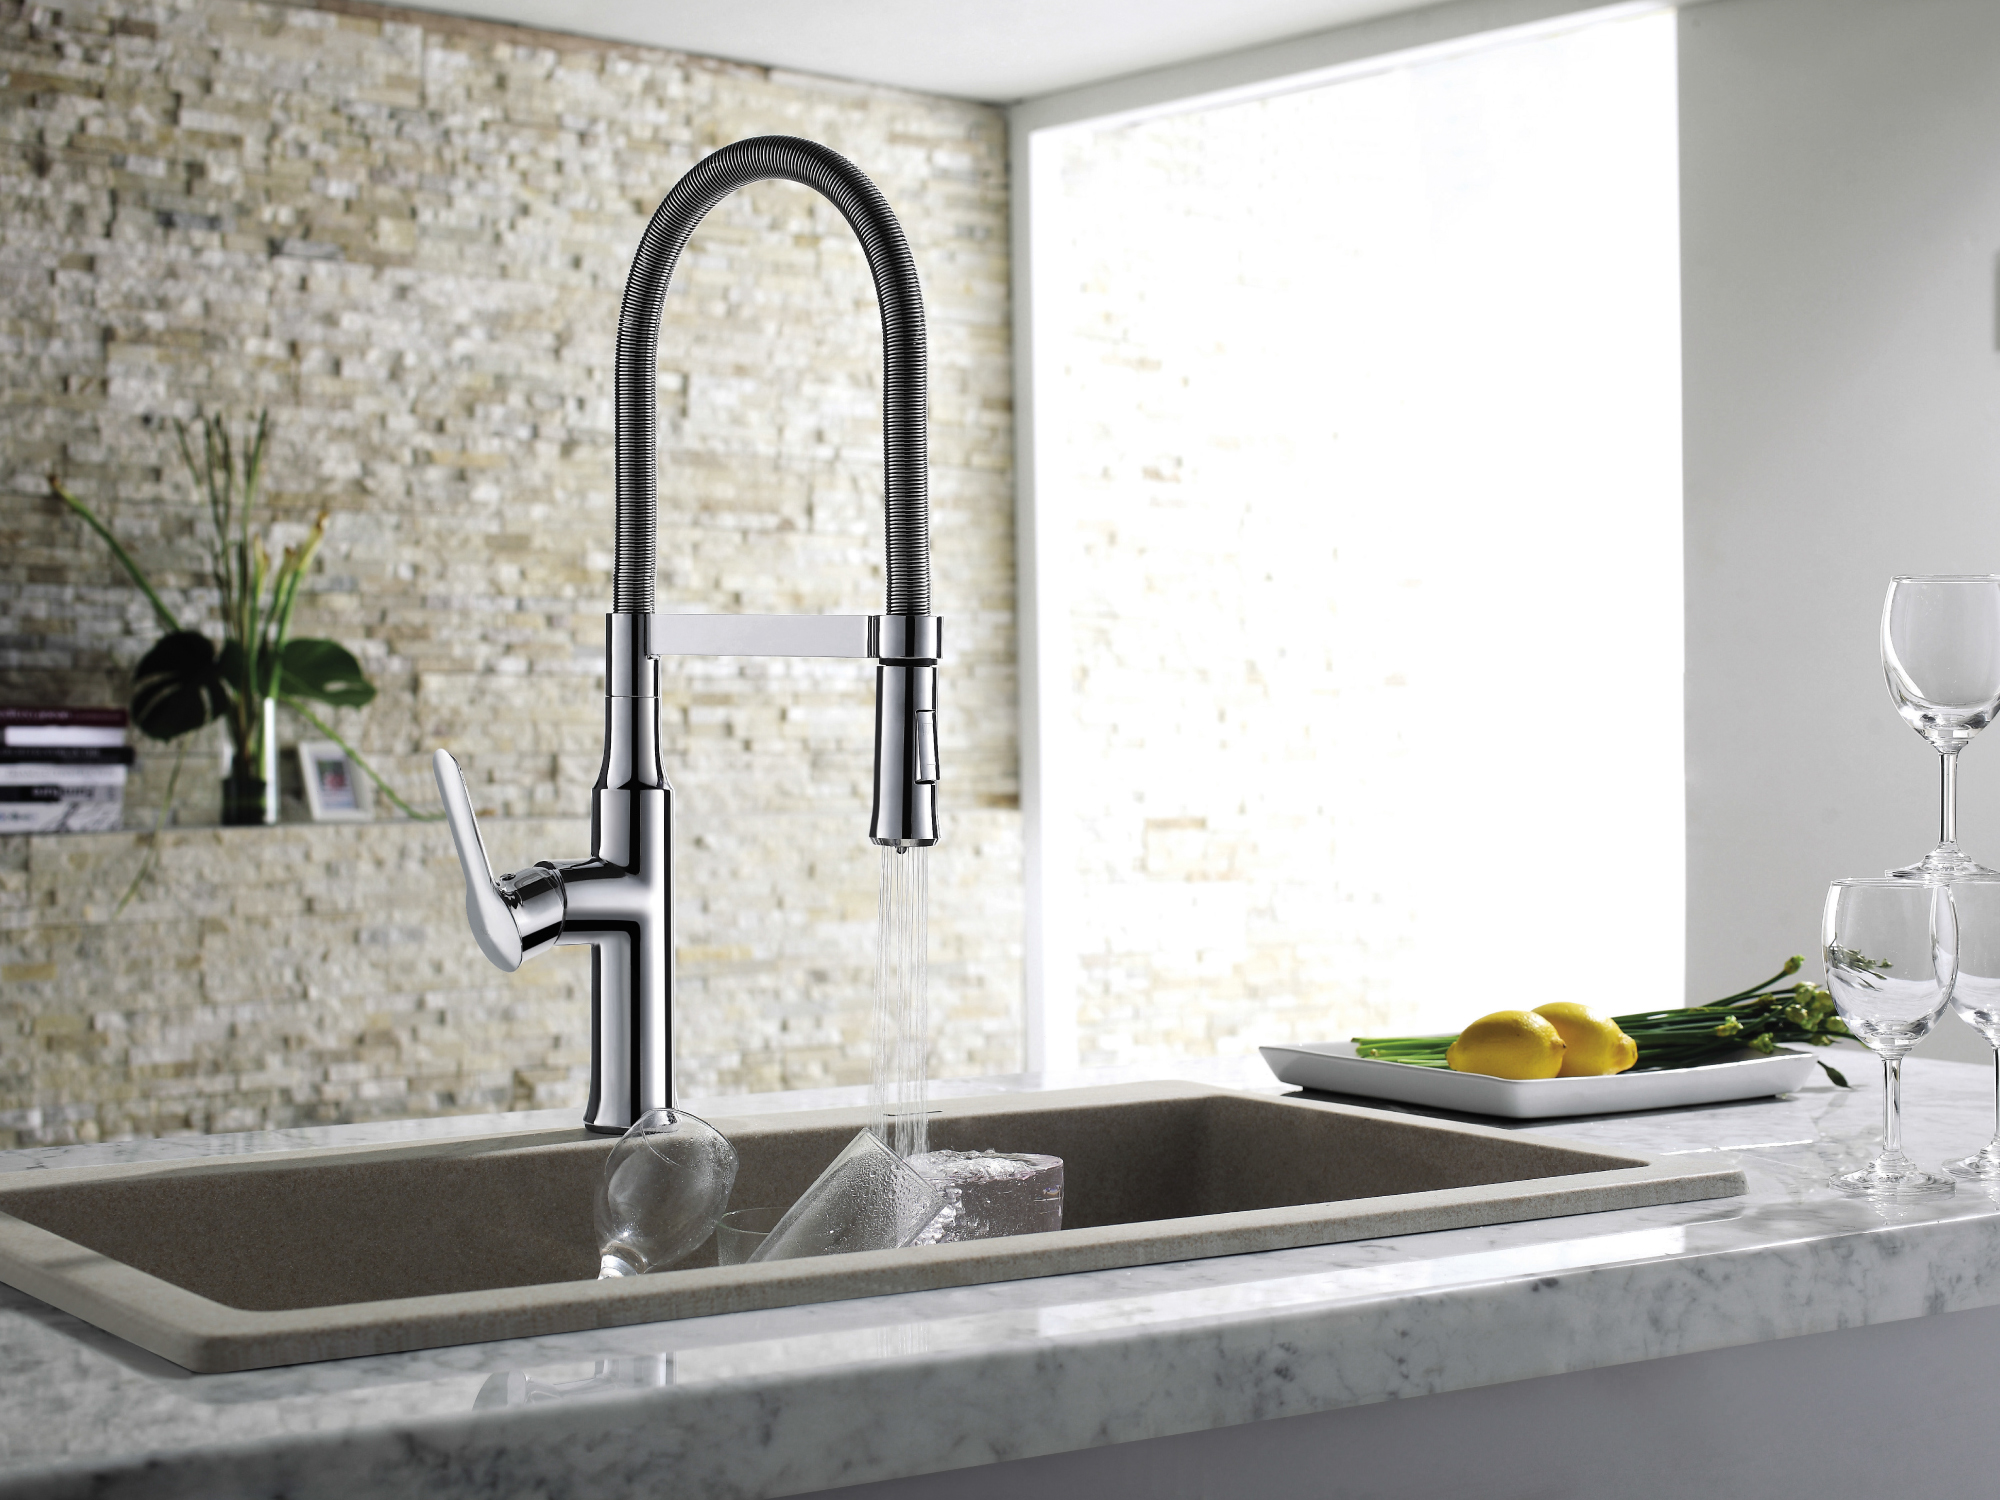 Astini Novello kitchen taps, available in chrome and brushed steel finish from £379.99 - Available autumn 2014